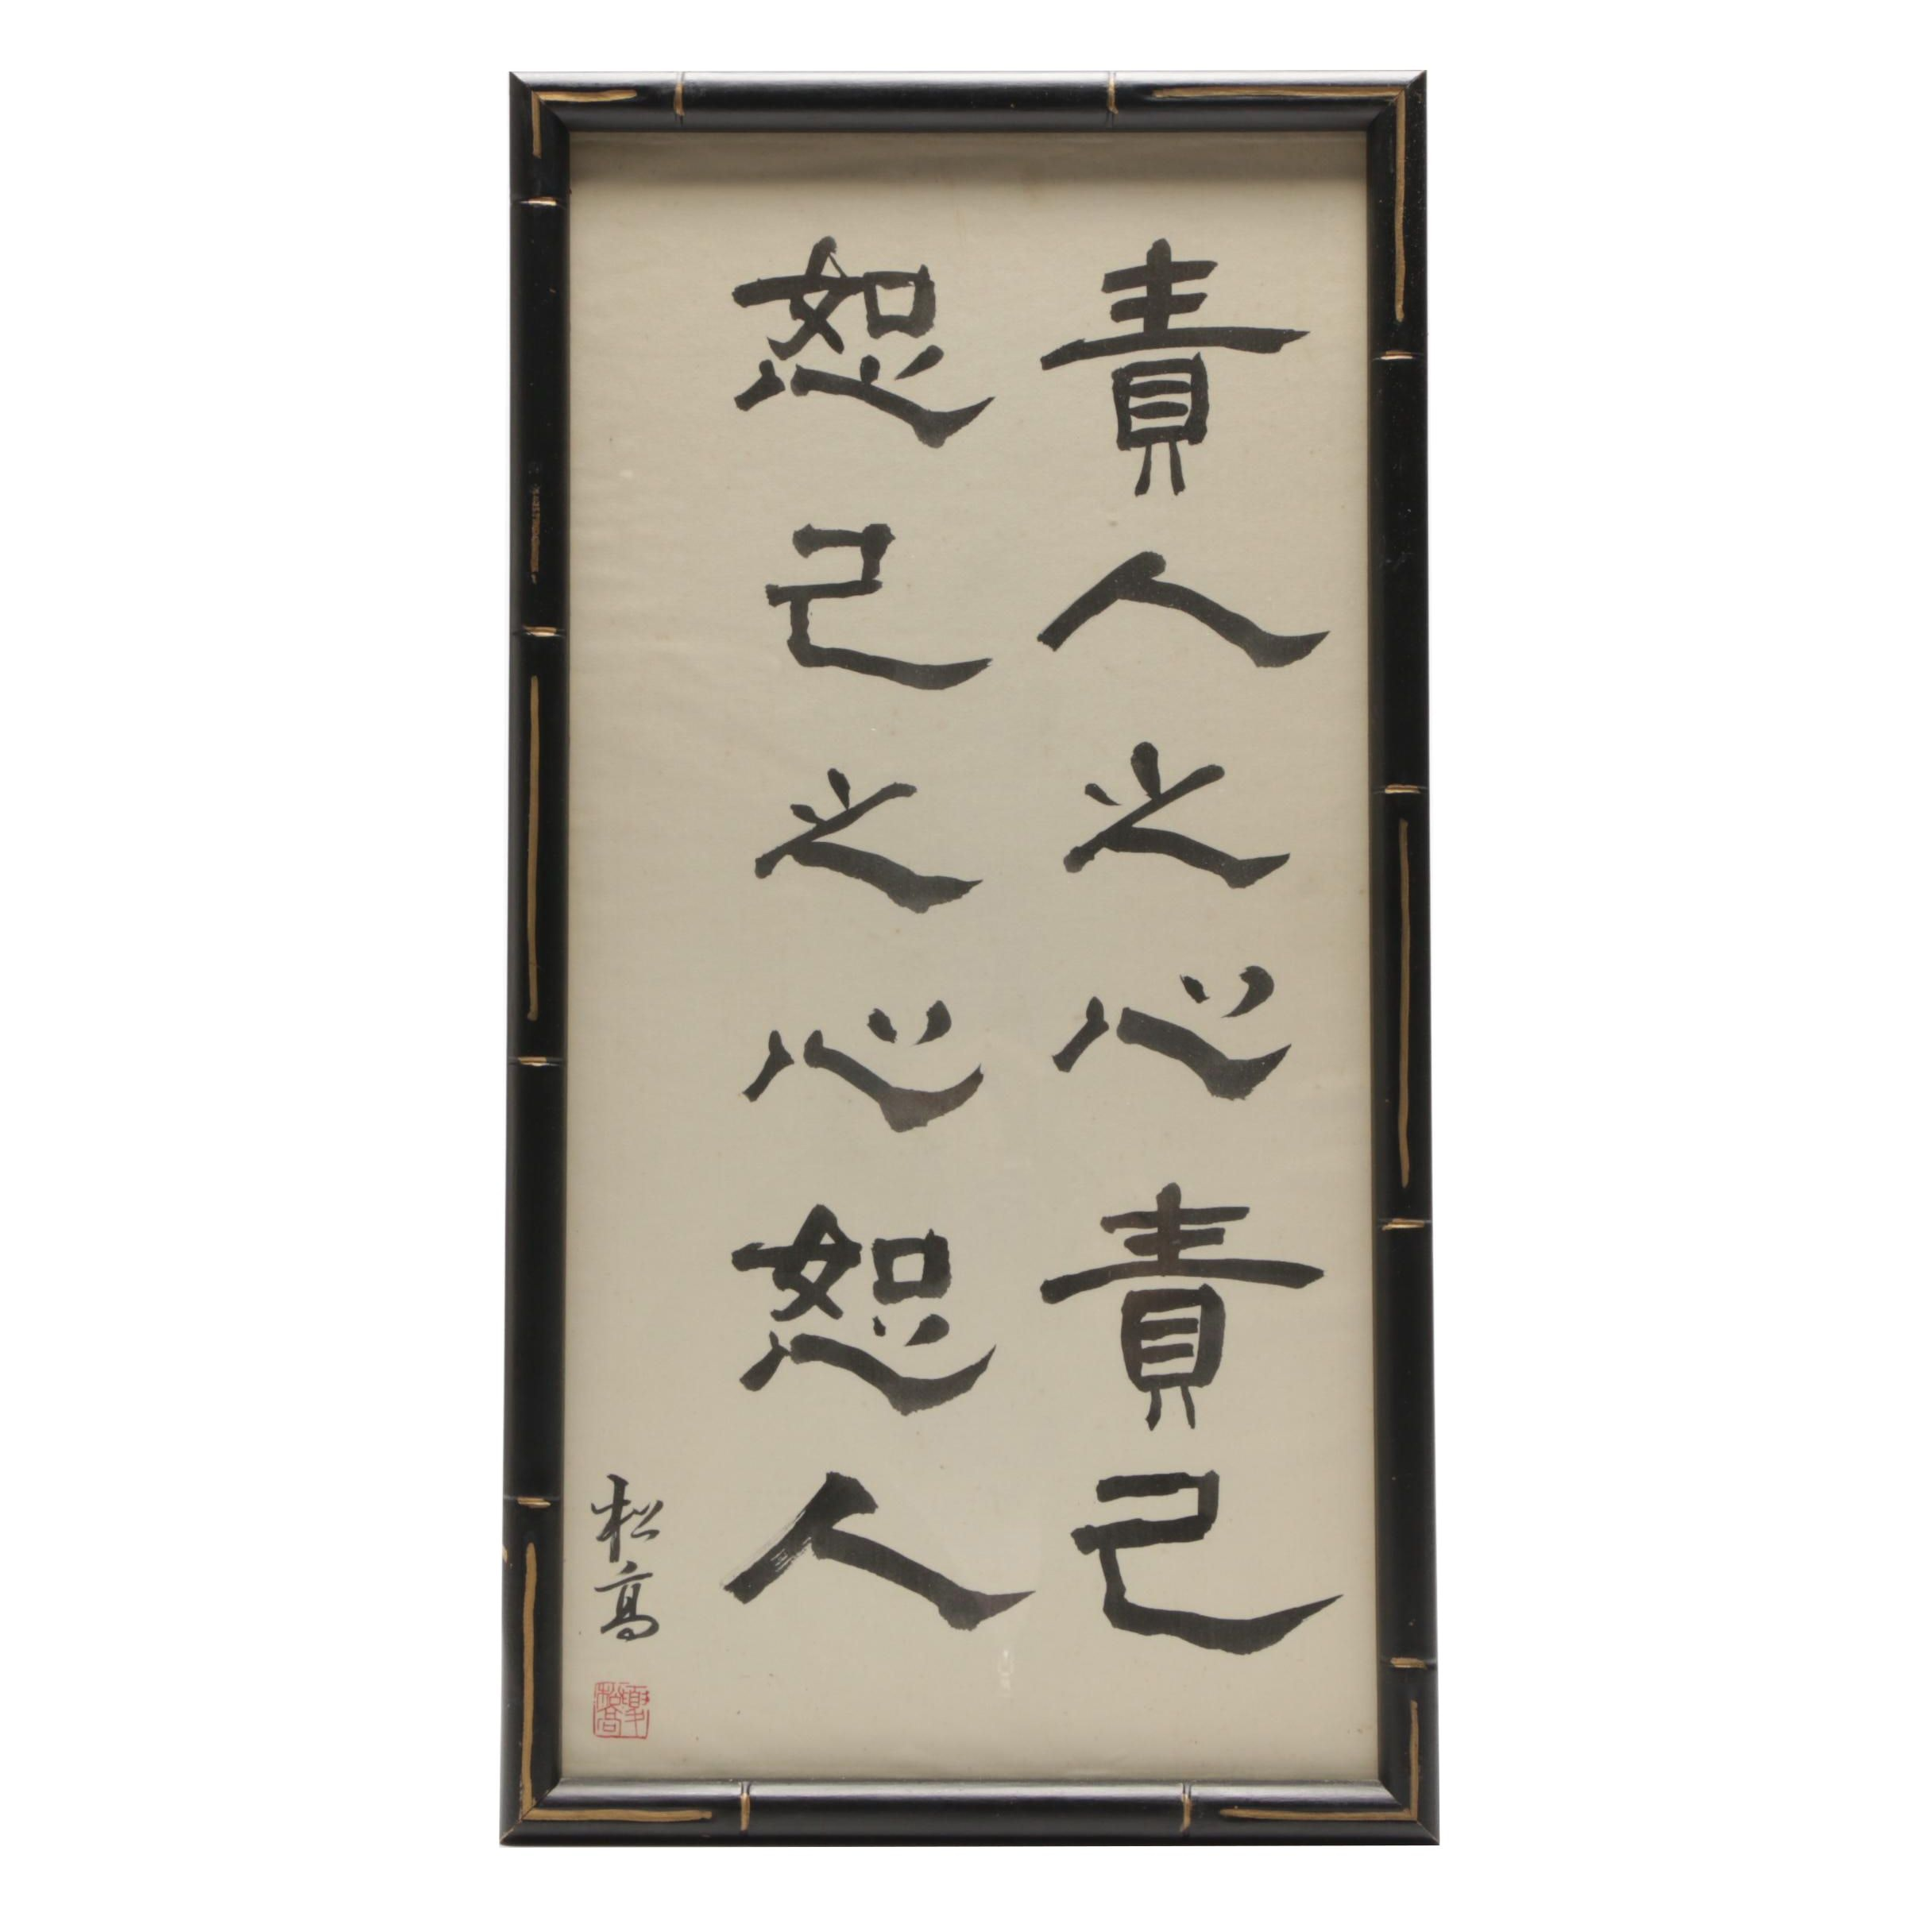 Serigraph on Silk of Japanese Calligraphy